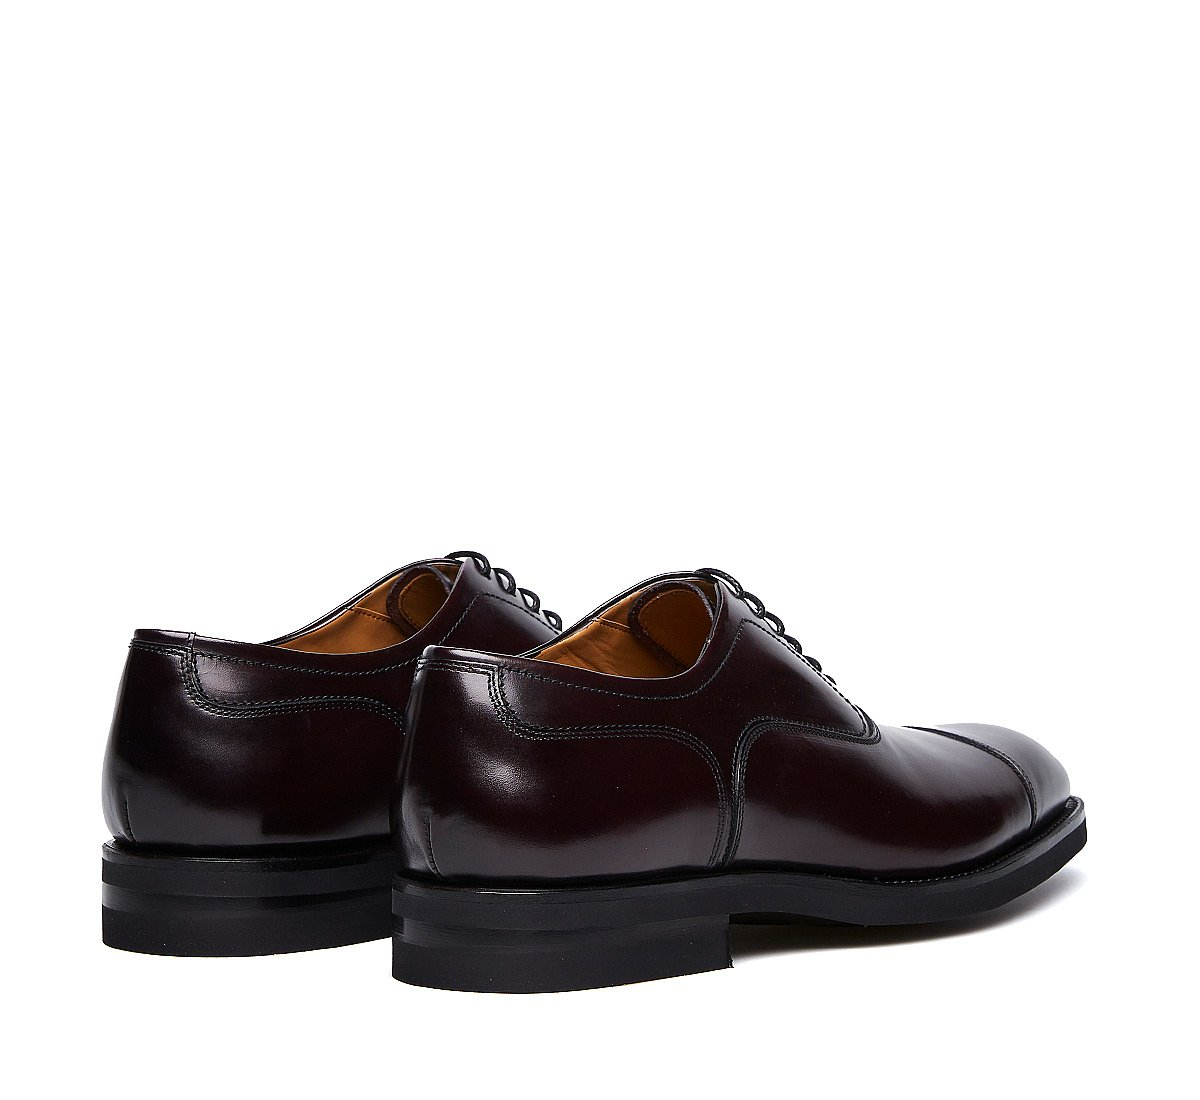 Five-eyelet lace-ups with Flex Goodyear construction